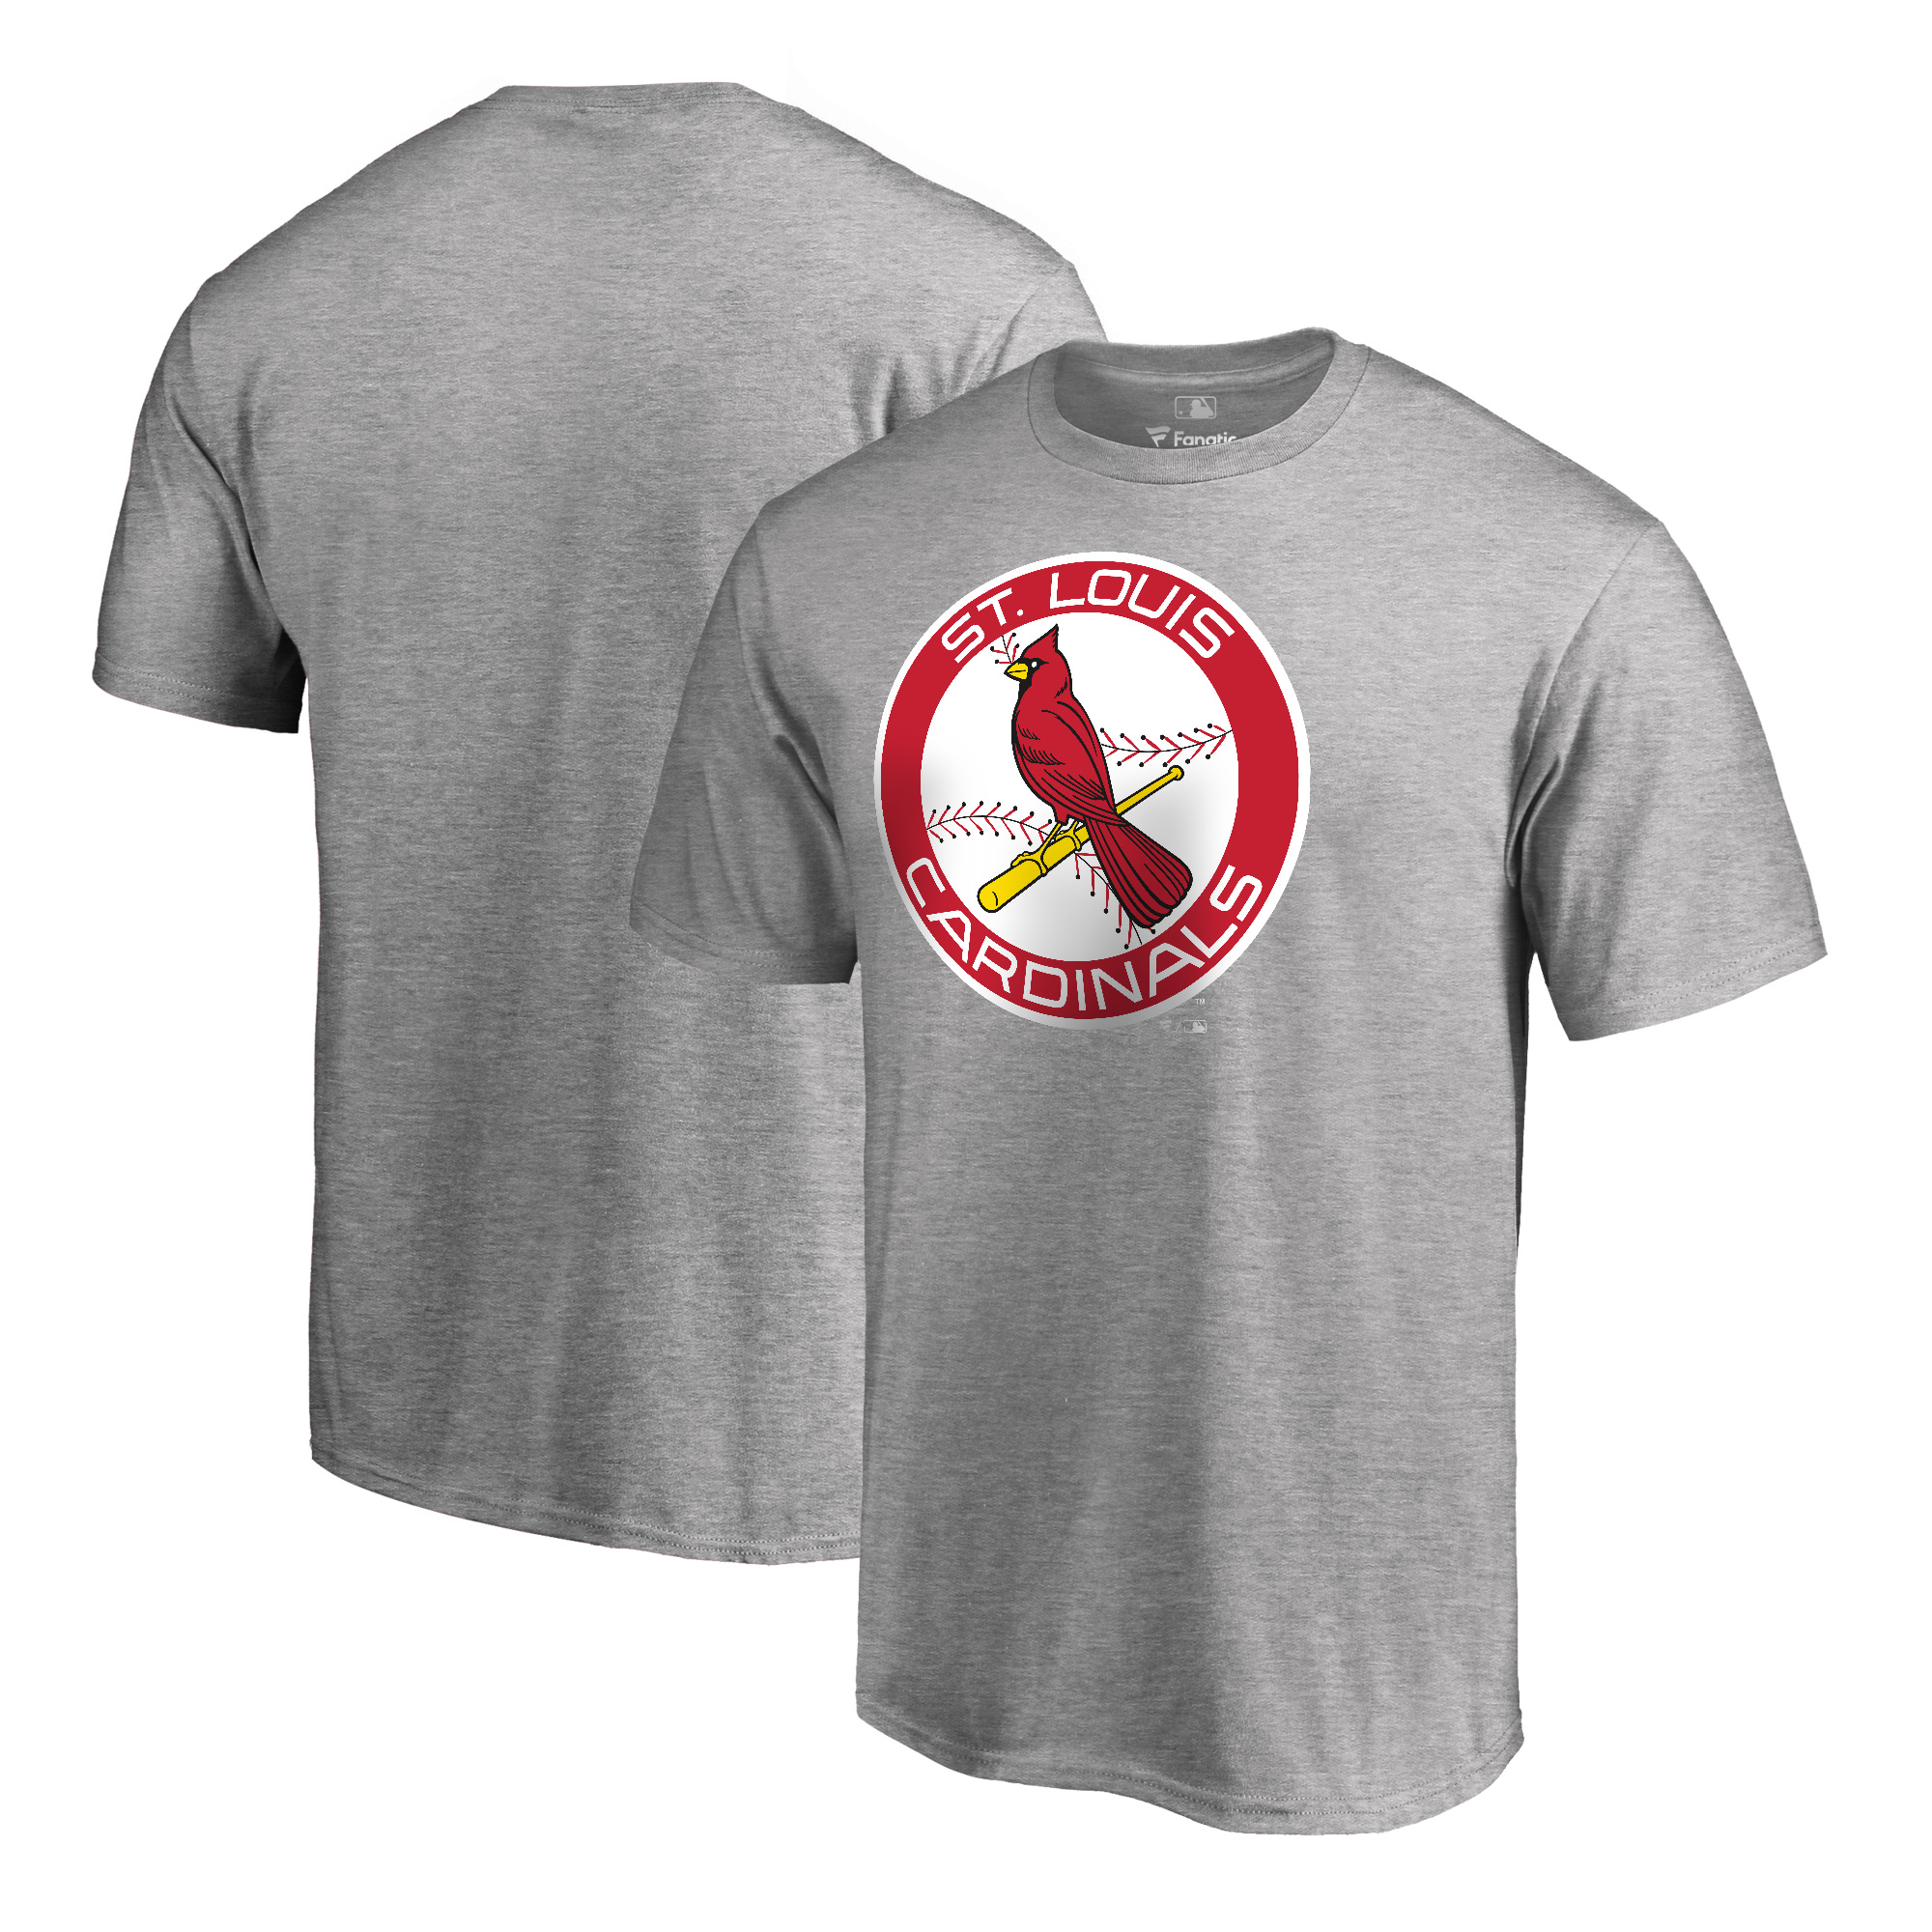 St. Louis Cardinals Fanatics Branded Cooperstown Collection Huntington T-Shirt - Heathered Gray